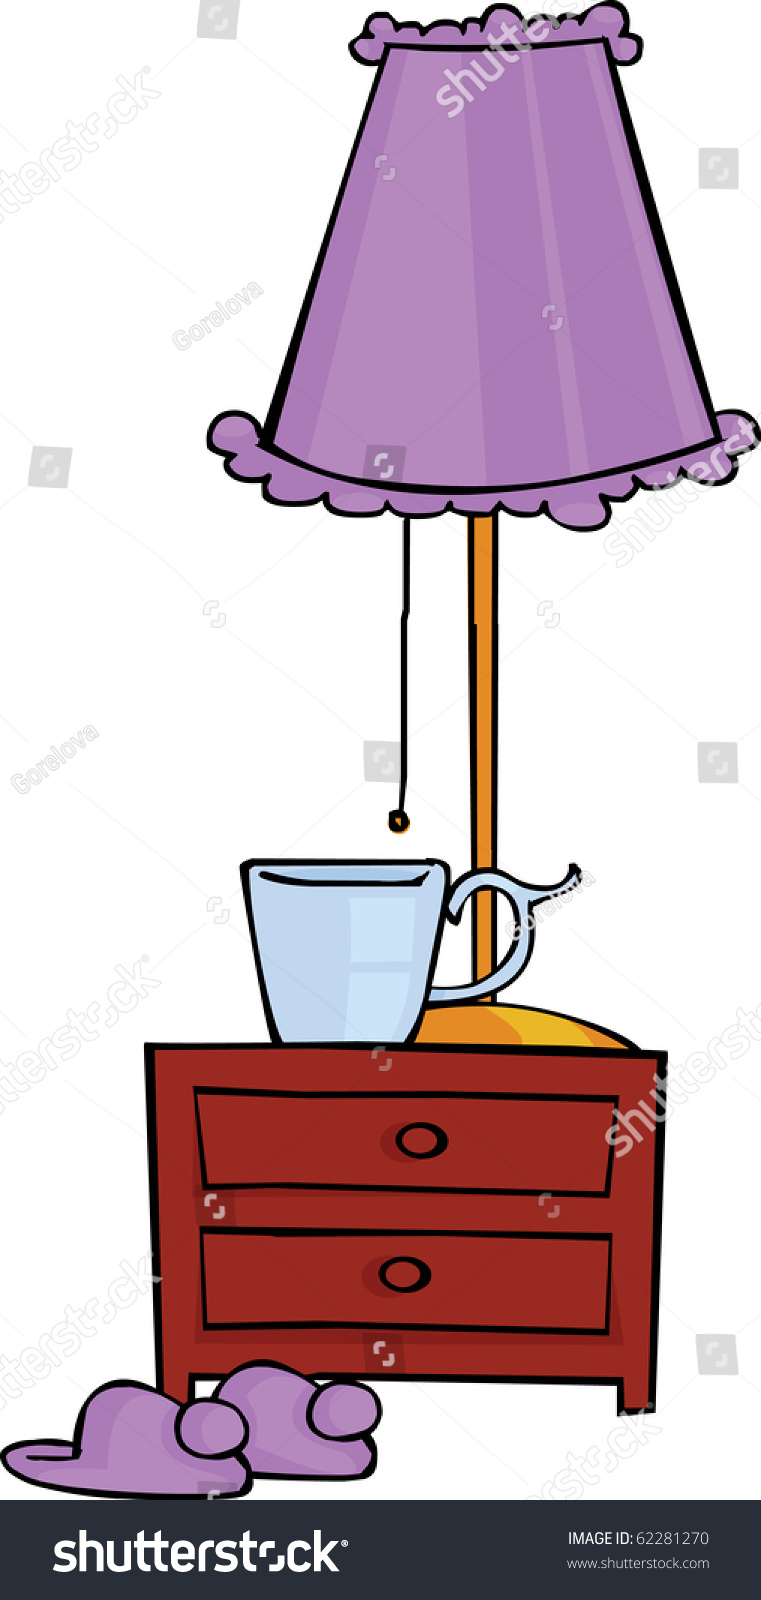 night table clipart - photo #13